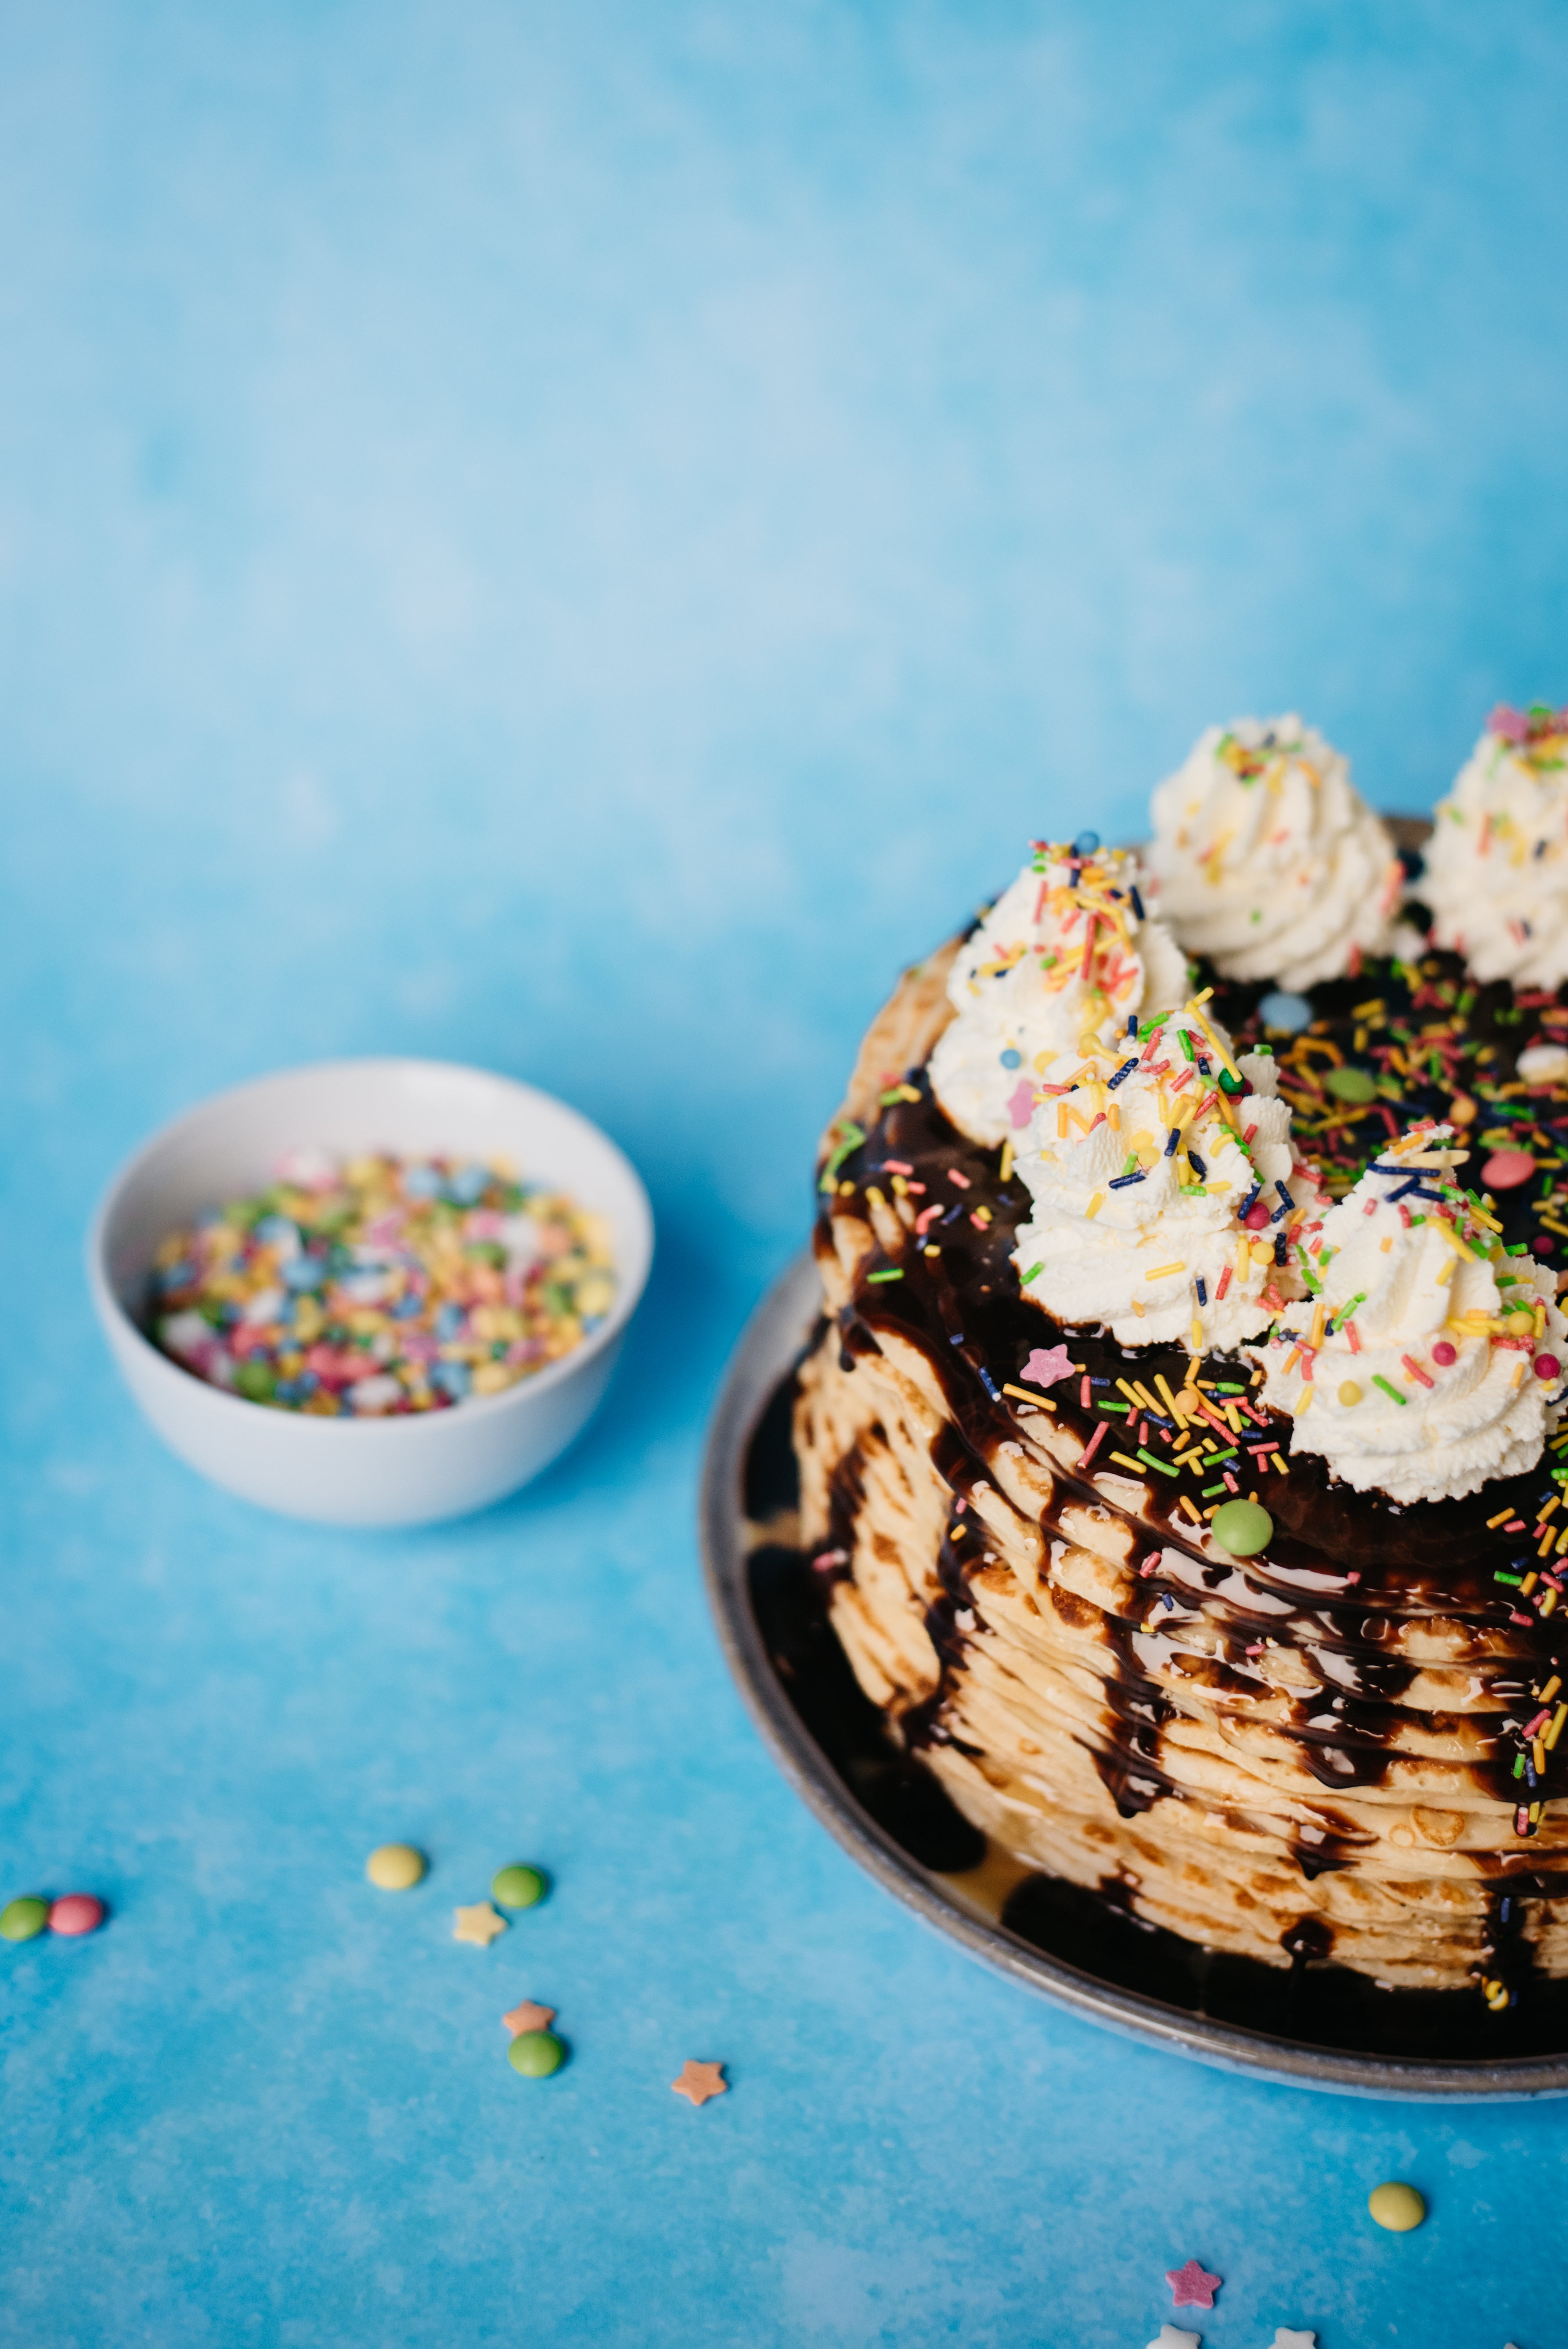 Crepe Cake with bowl of sprinkles at side